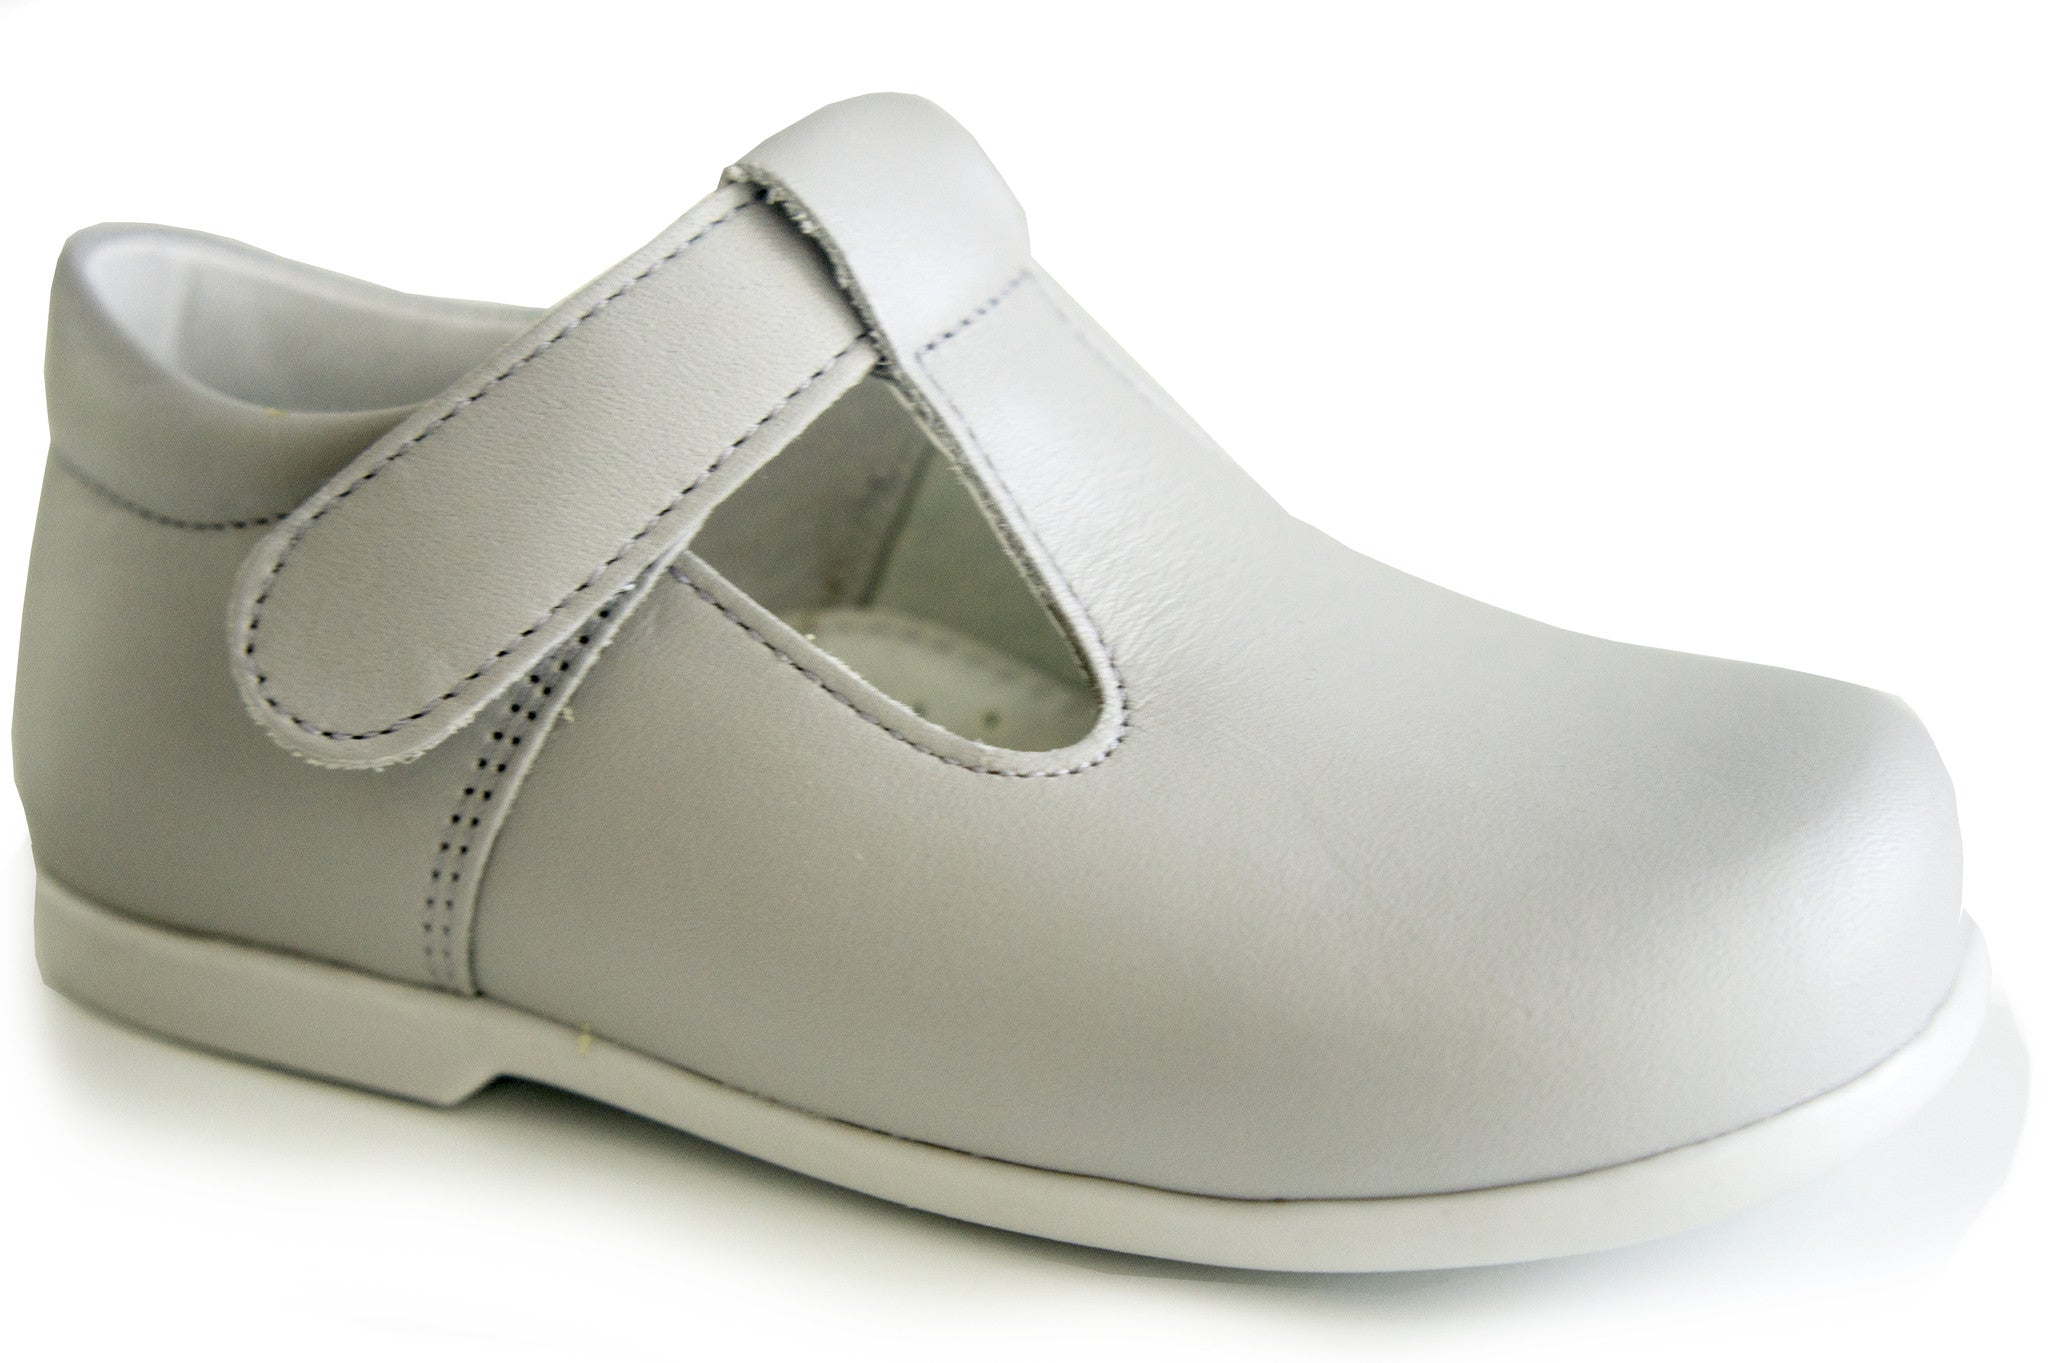 Classic Light Grey leather T-Strap Mary Janes unisex with easy open